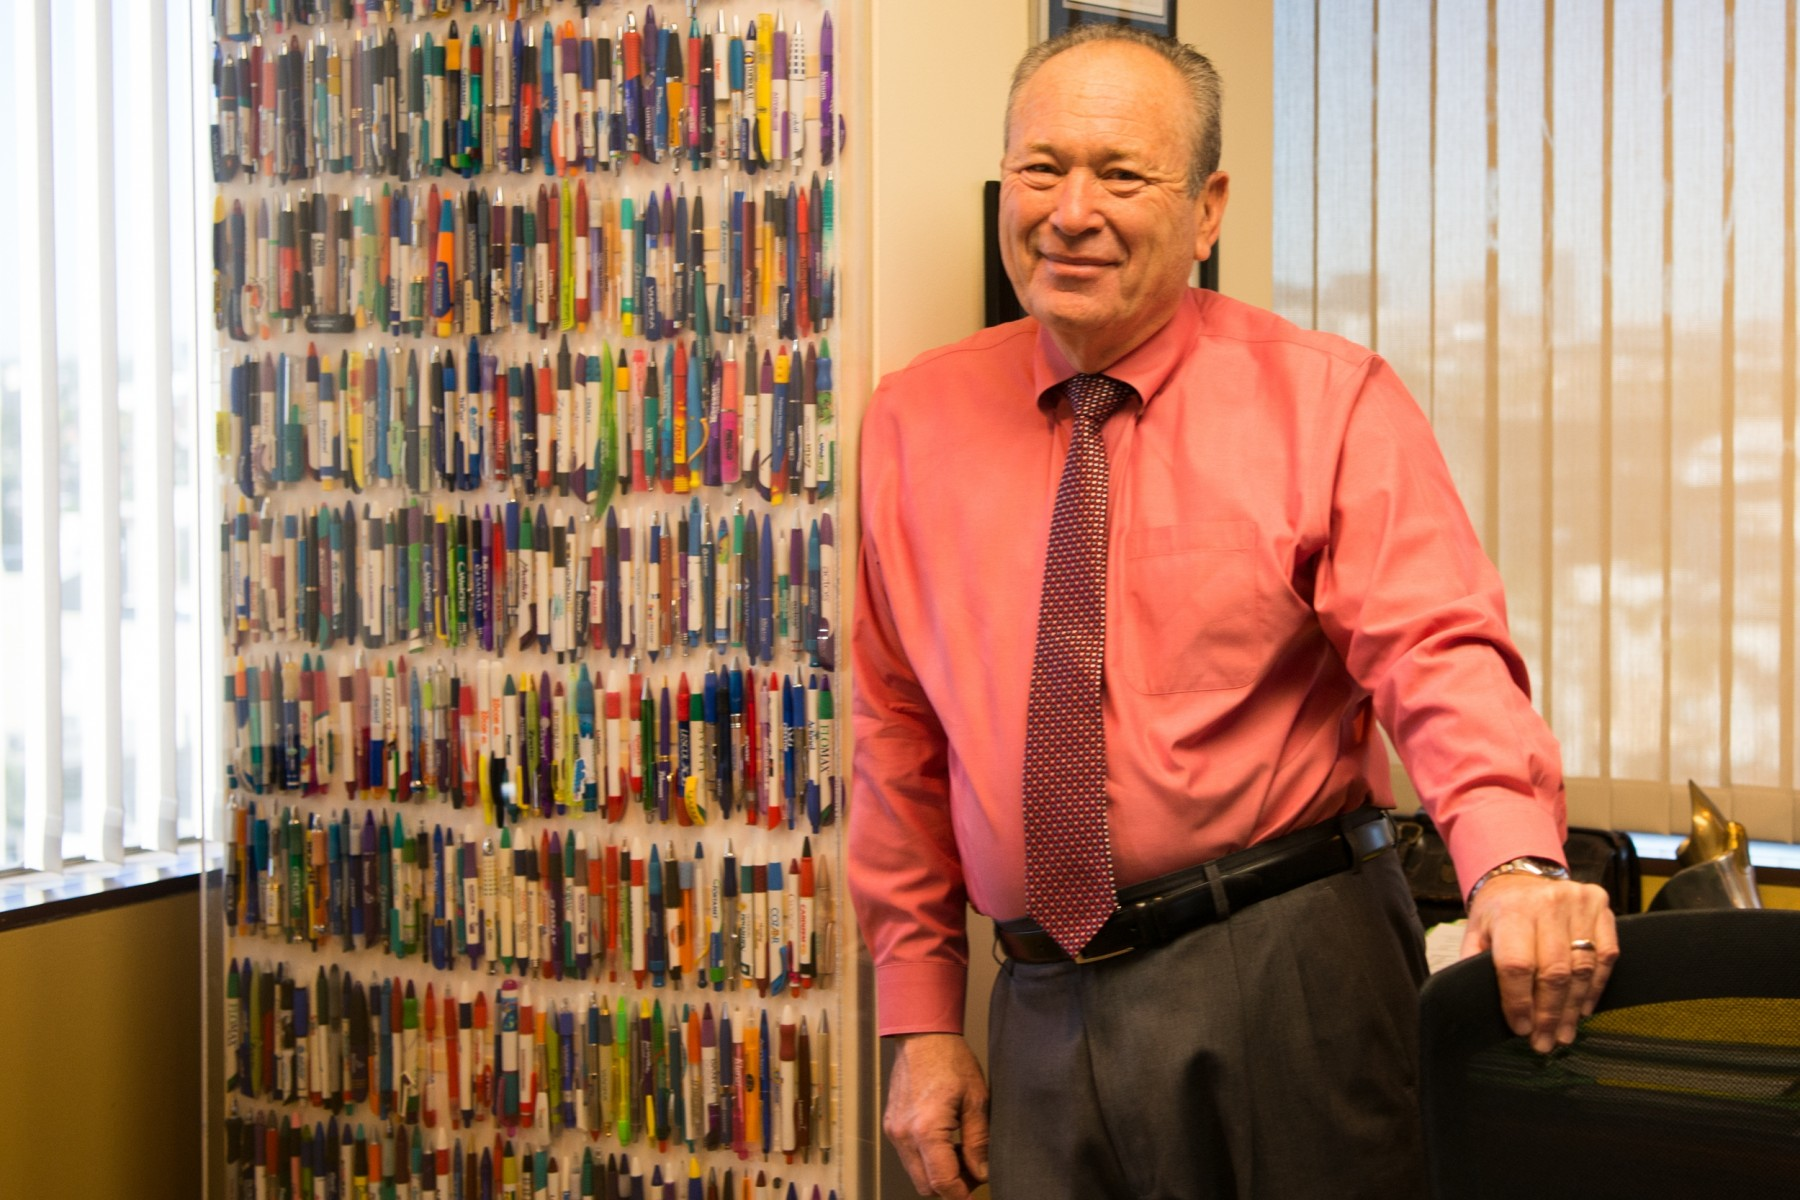 Jeff Caran, MD, with his pen collection. Photo by Cedars-Sinai.